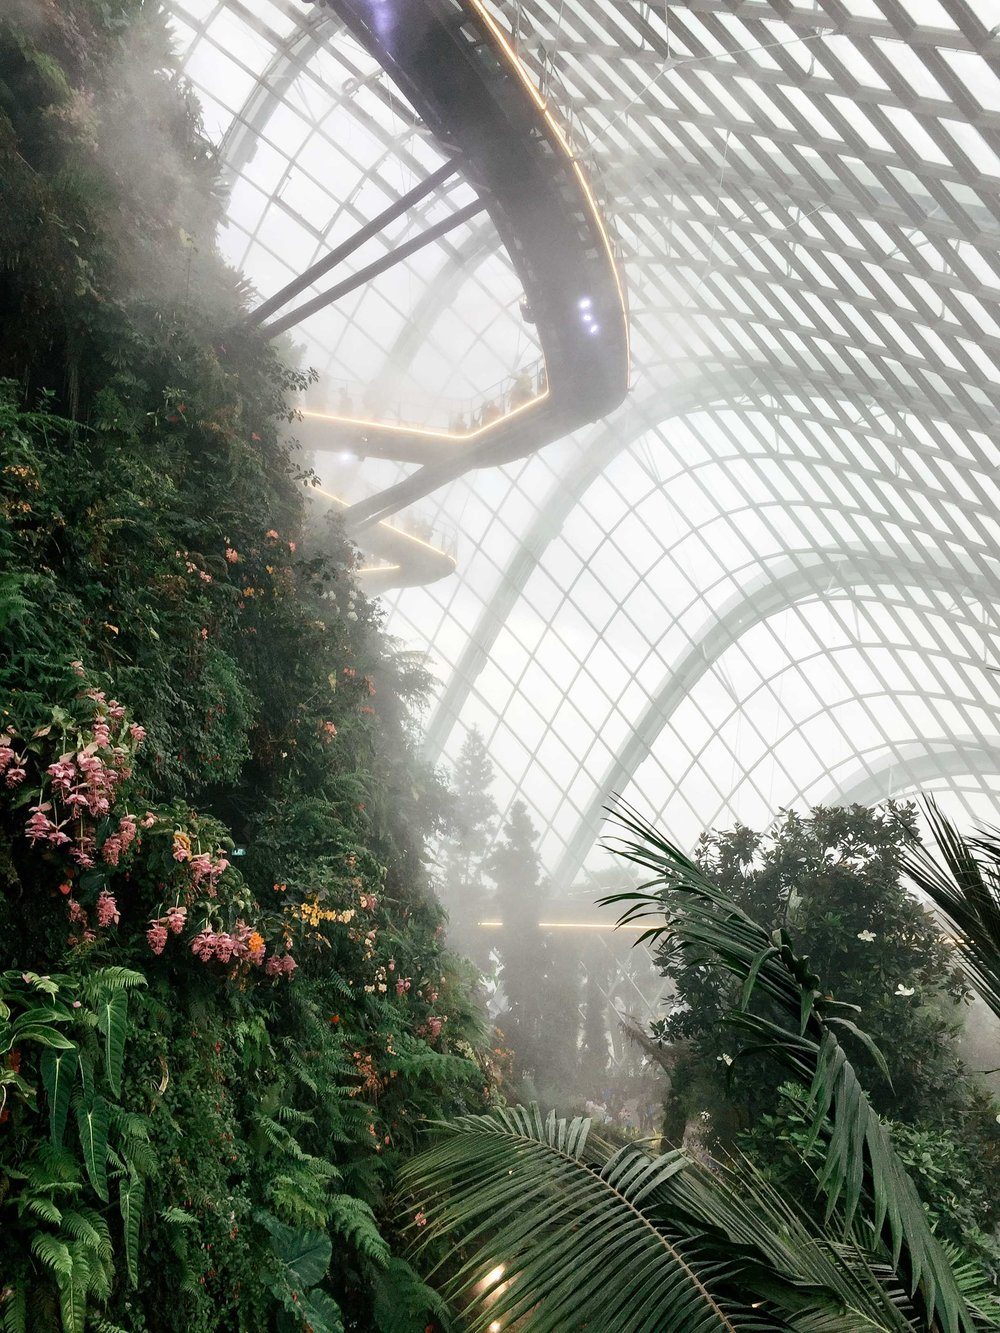 The misty, mysterious jungle